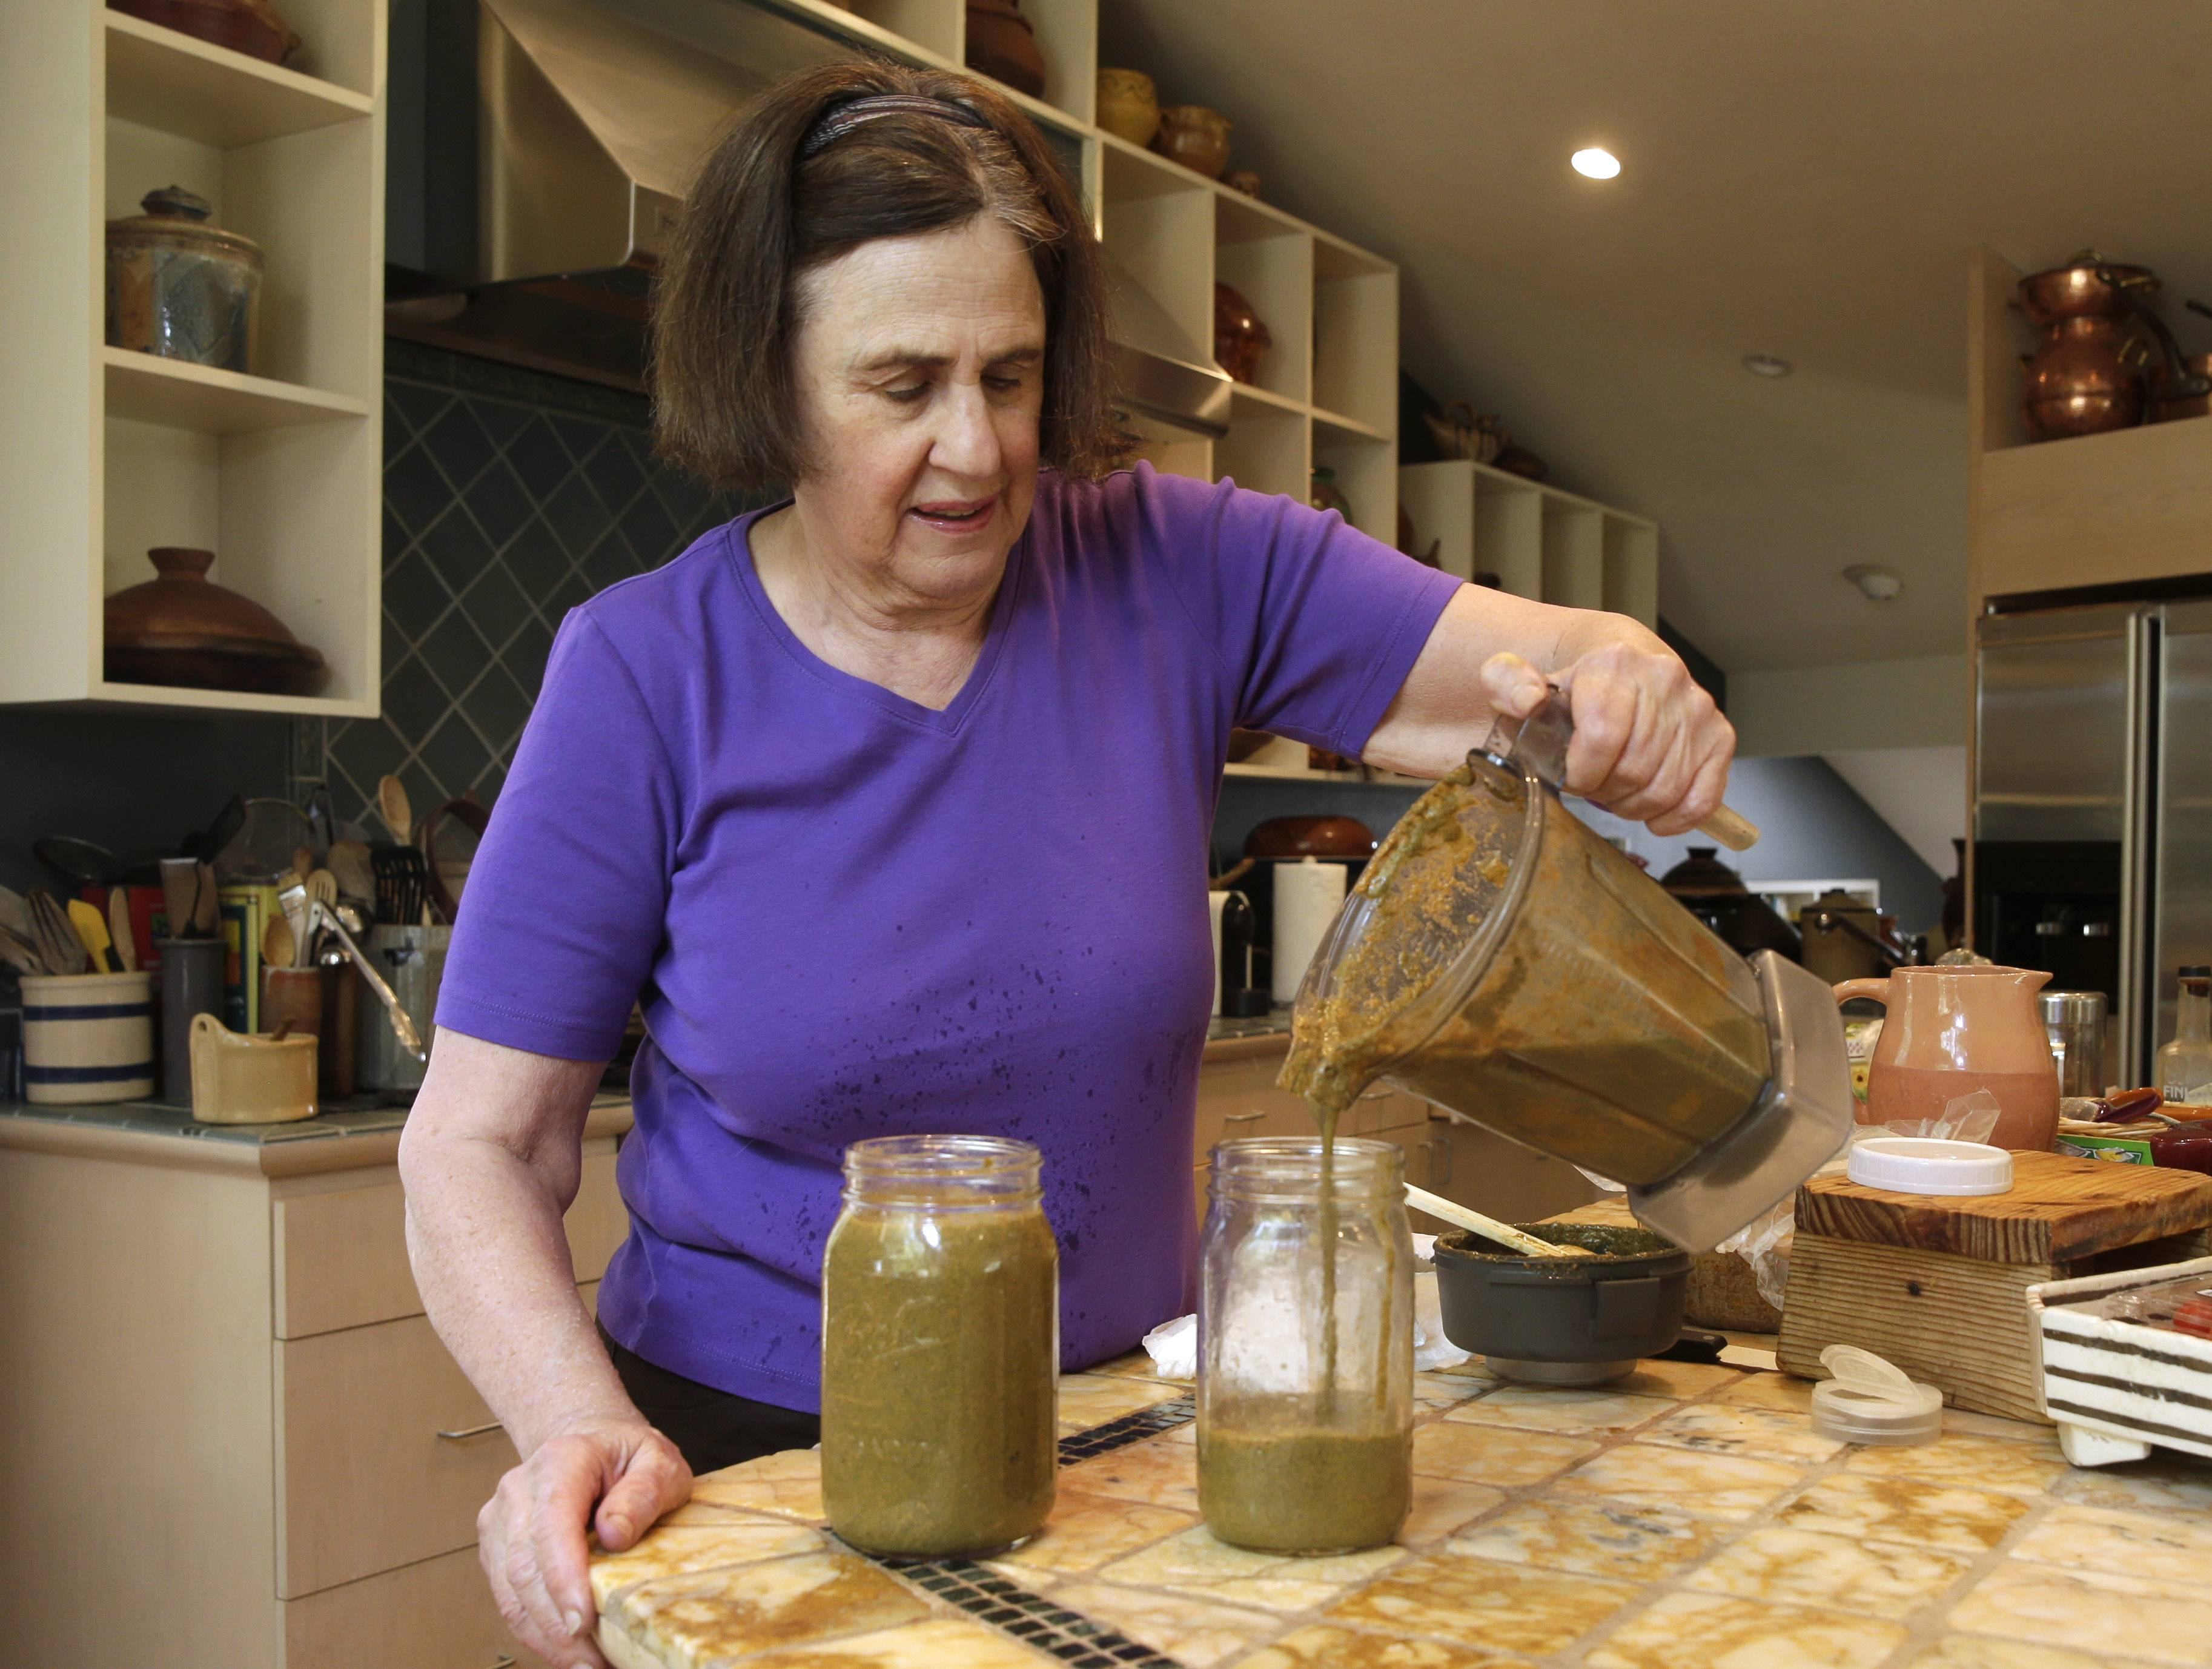 Paula Wolfert pours a smoothie mix into jars for storage at her home in Sonoma, Calif.